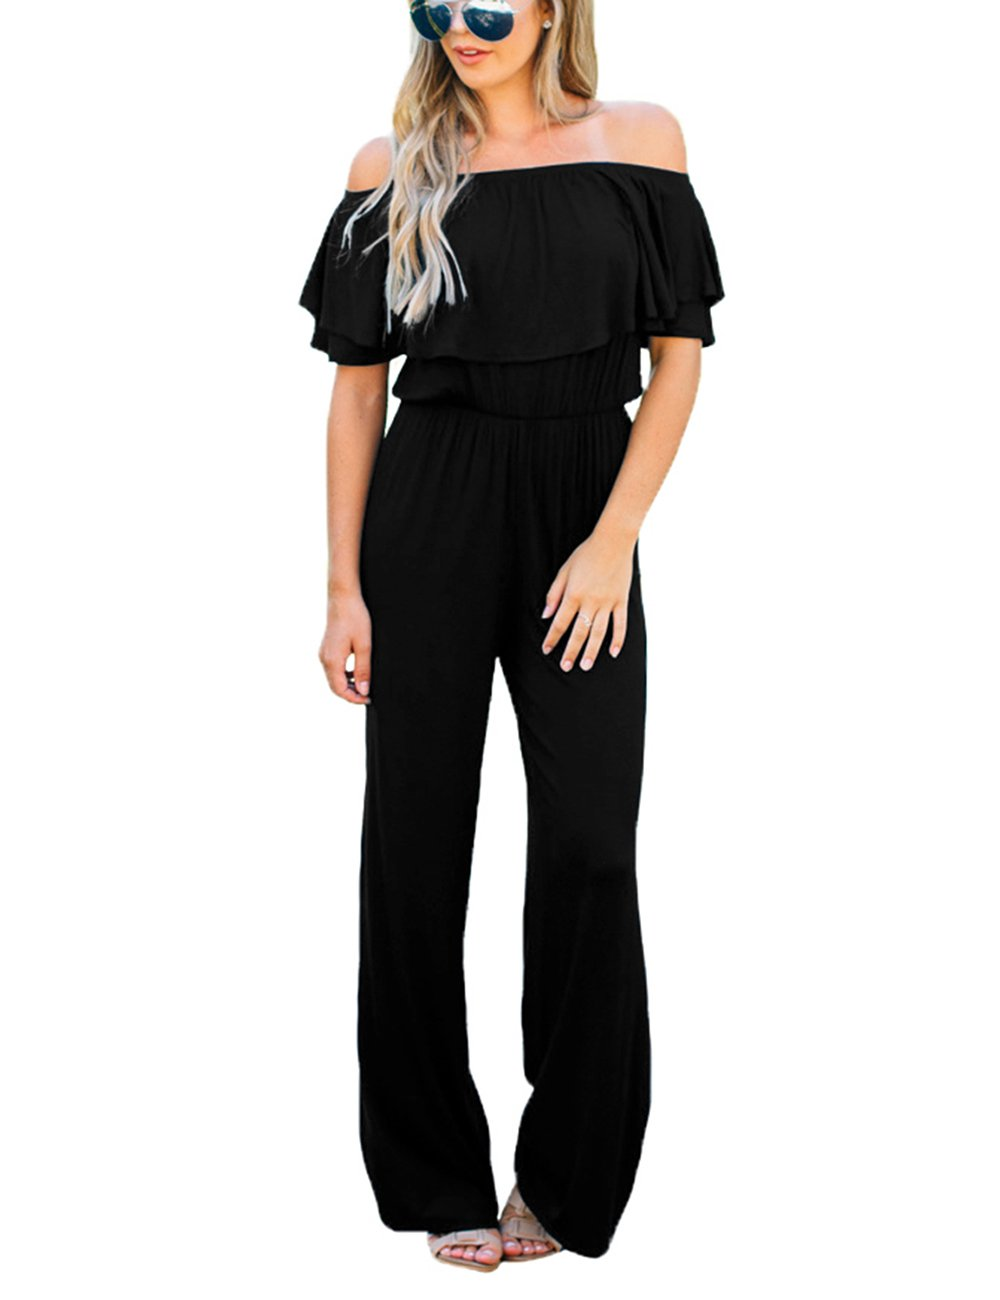 Lookbook Store Women's Sexy Off Shoulder High Waisted Ruffled Long Wide Leg Pants Black Jumpsuits Rompers Size XL